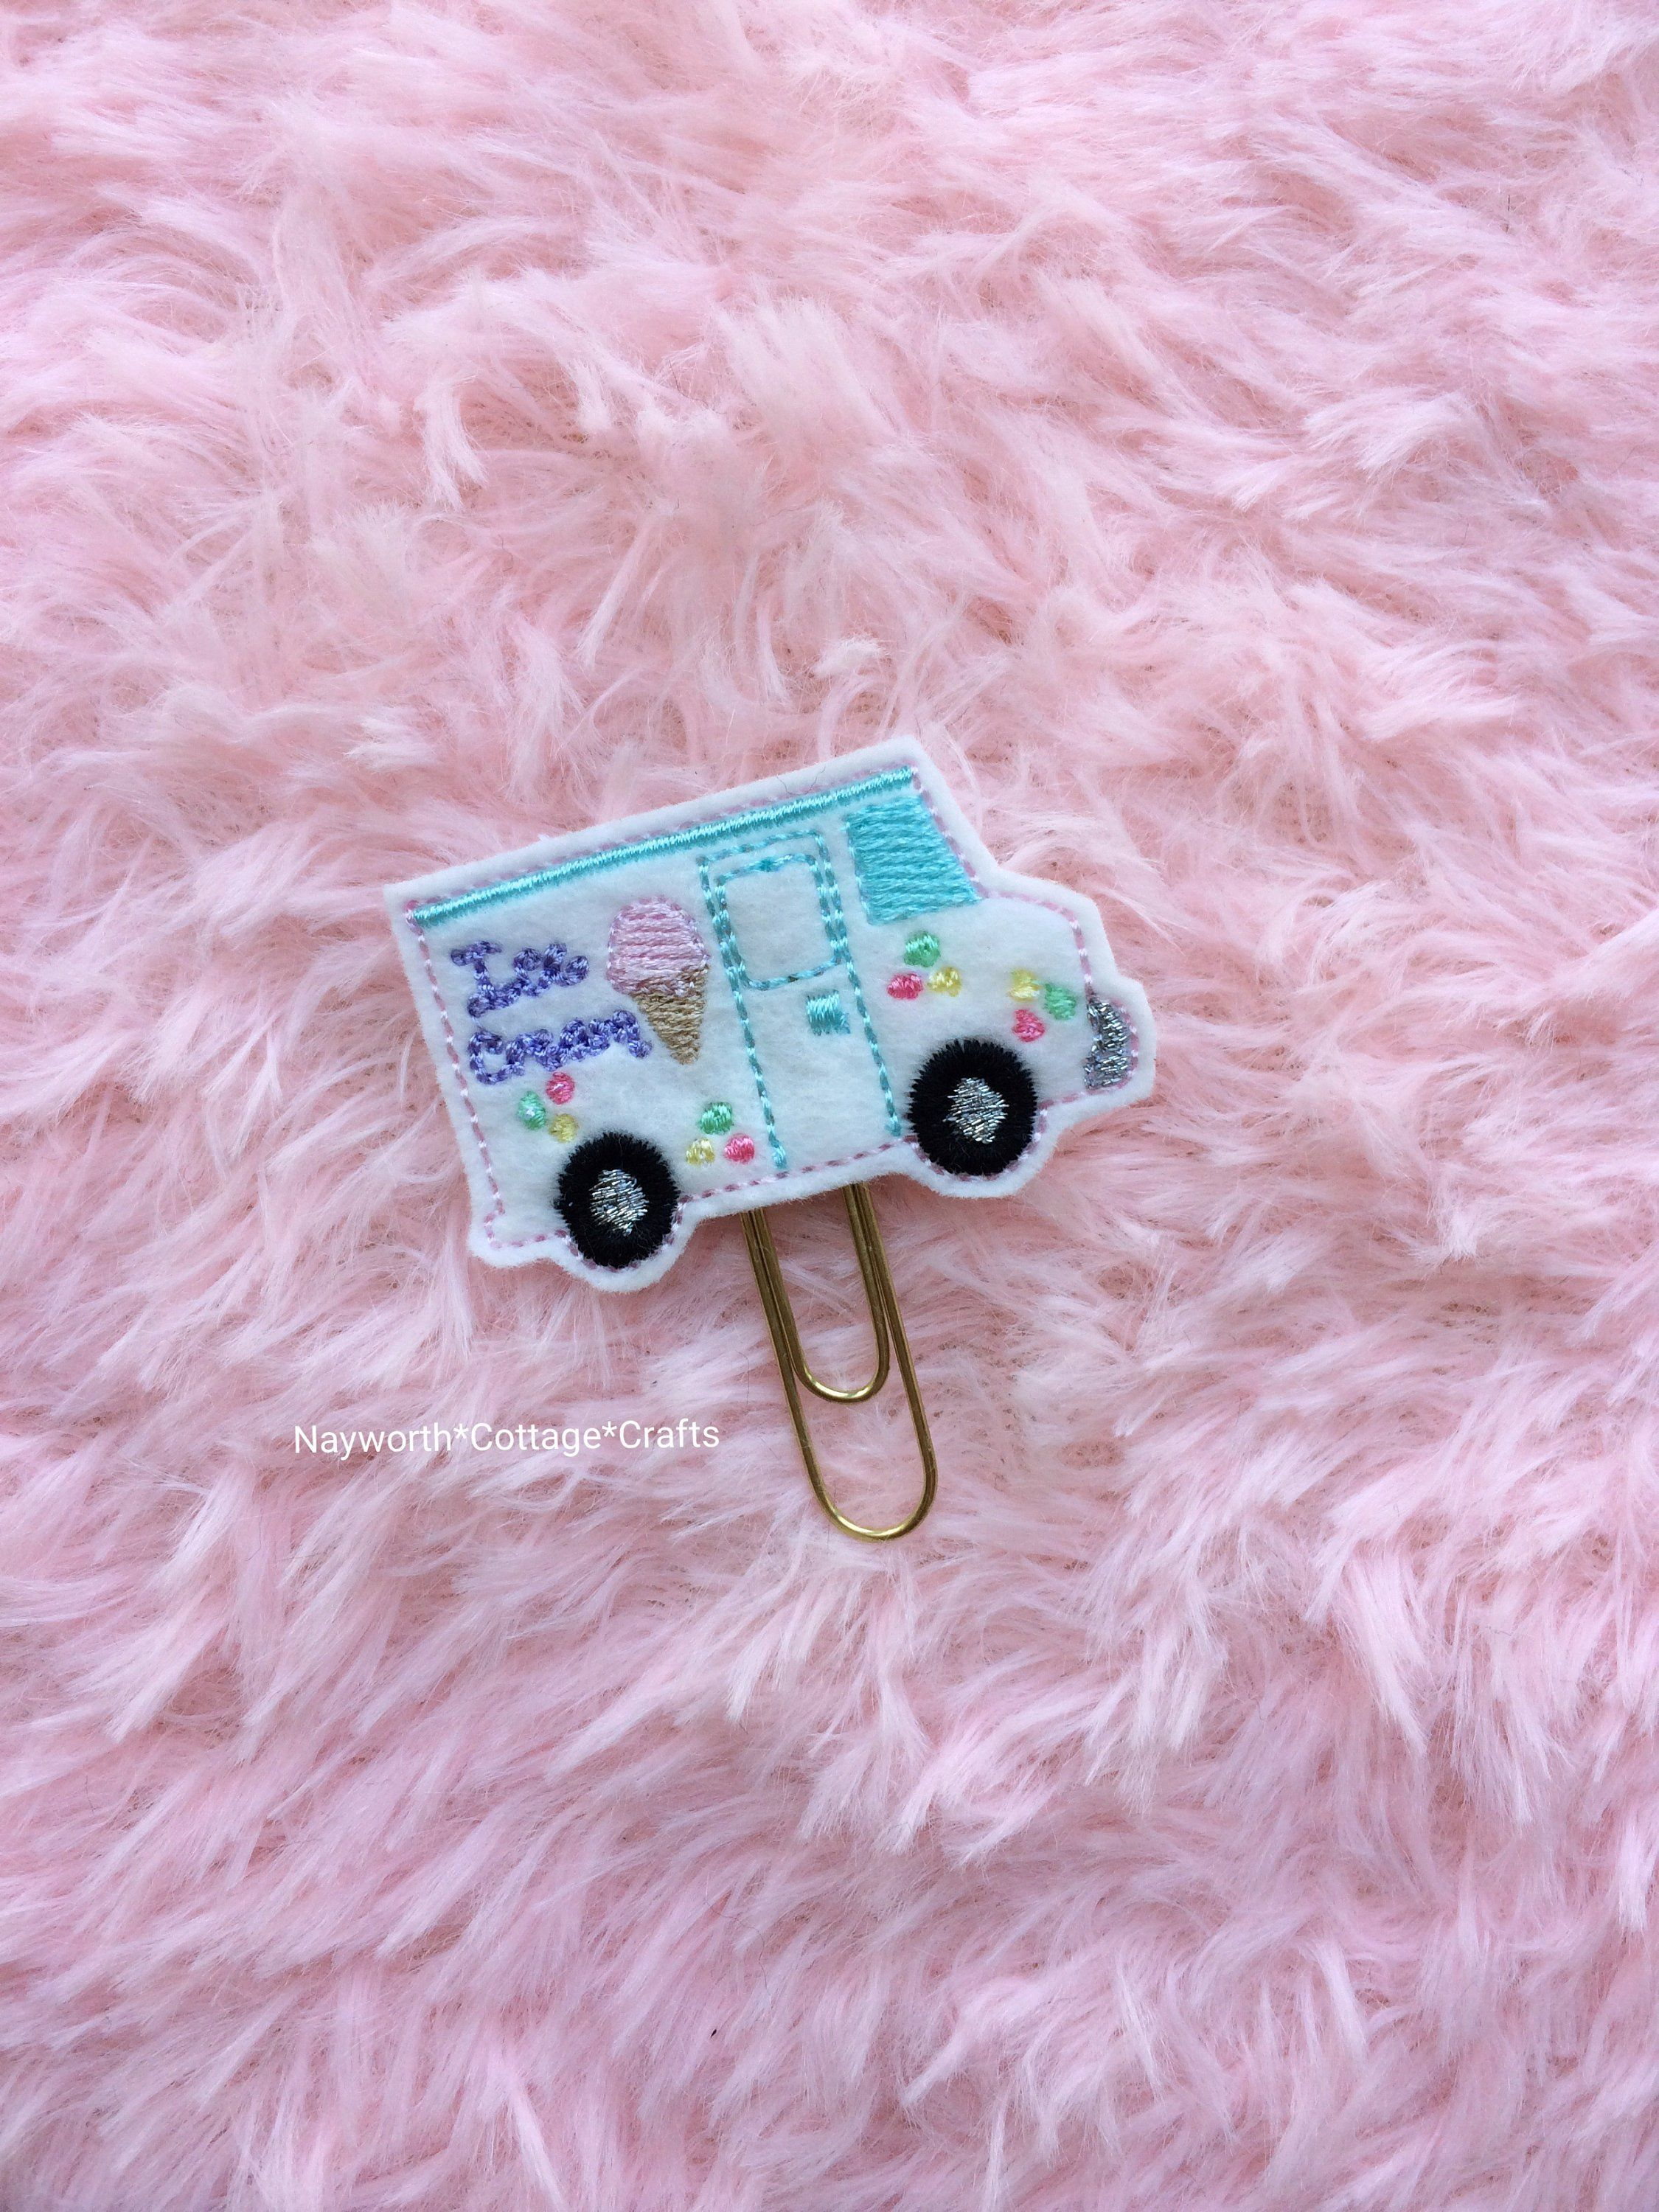 Embroidery charm Sewing machine planner paper clip kikkik diary craft